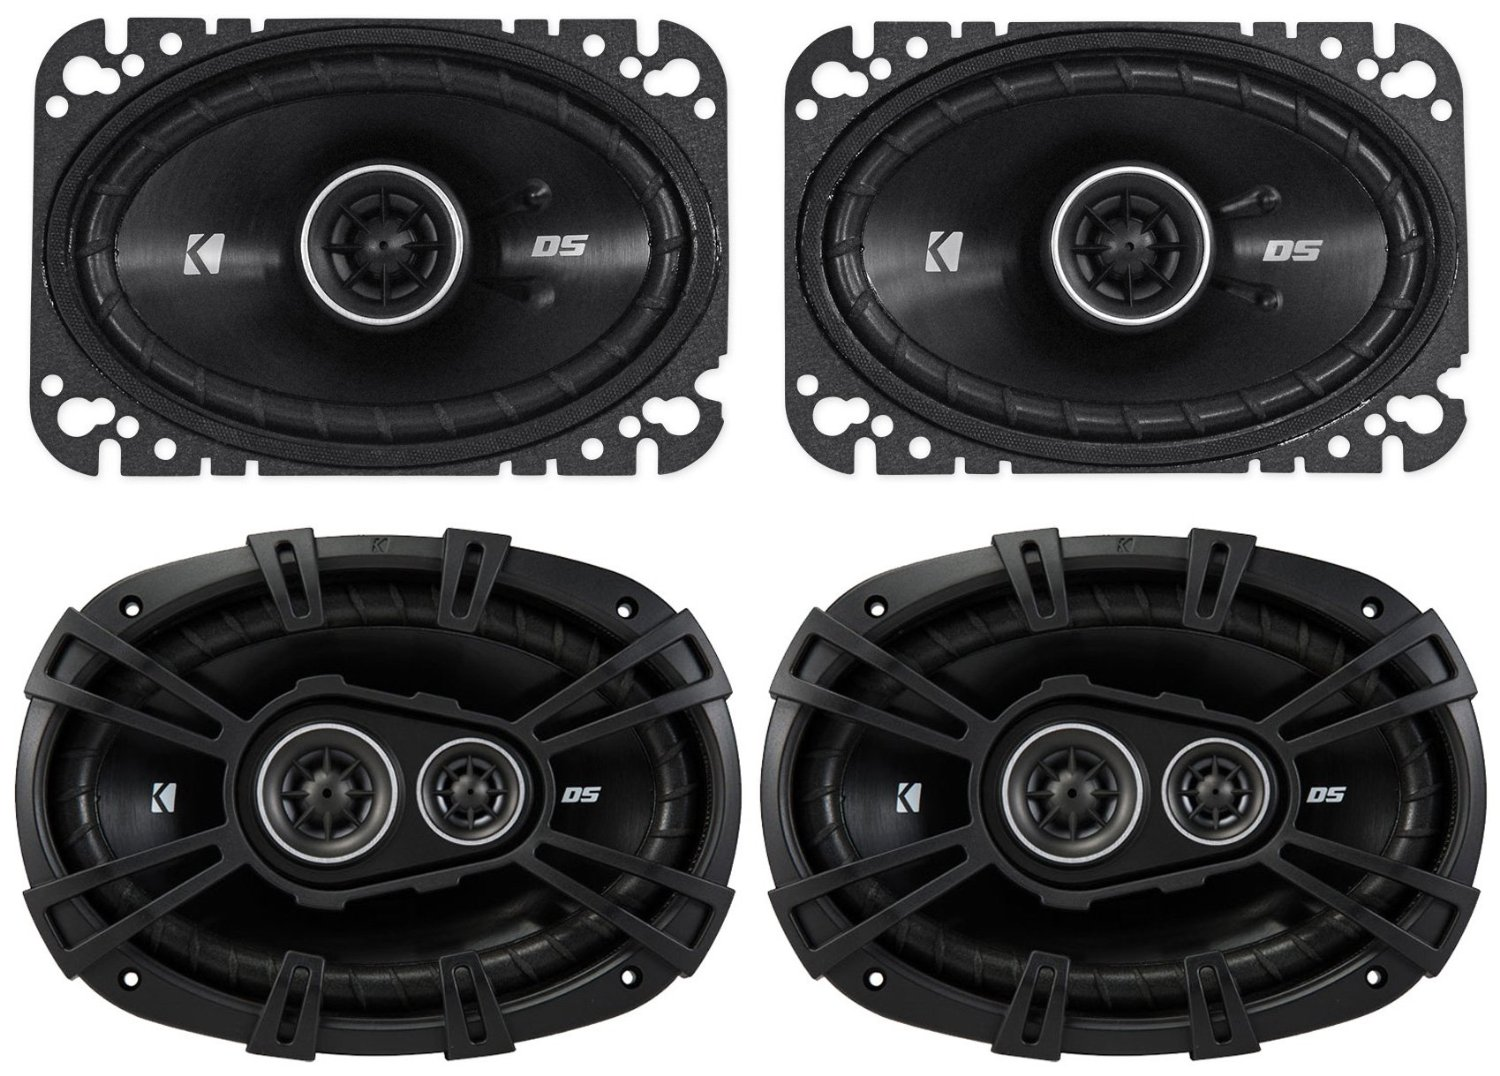 "Package: Pair of Kicker 43DSC4604 120 Watt 4x6 2-Way Car Stereo Speakers + Pair of Kicker 43DSC69304 6""x9"" 360 Watt 3-Way Speakers With 4-Ohm Impedance"